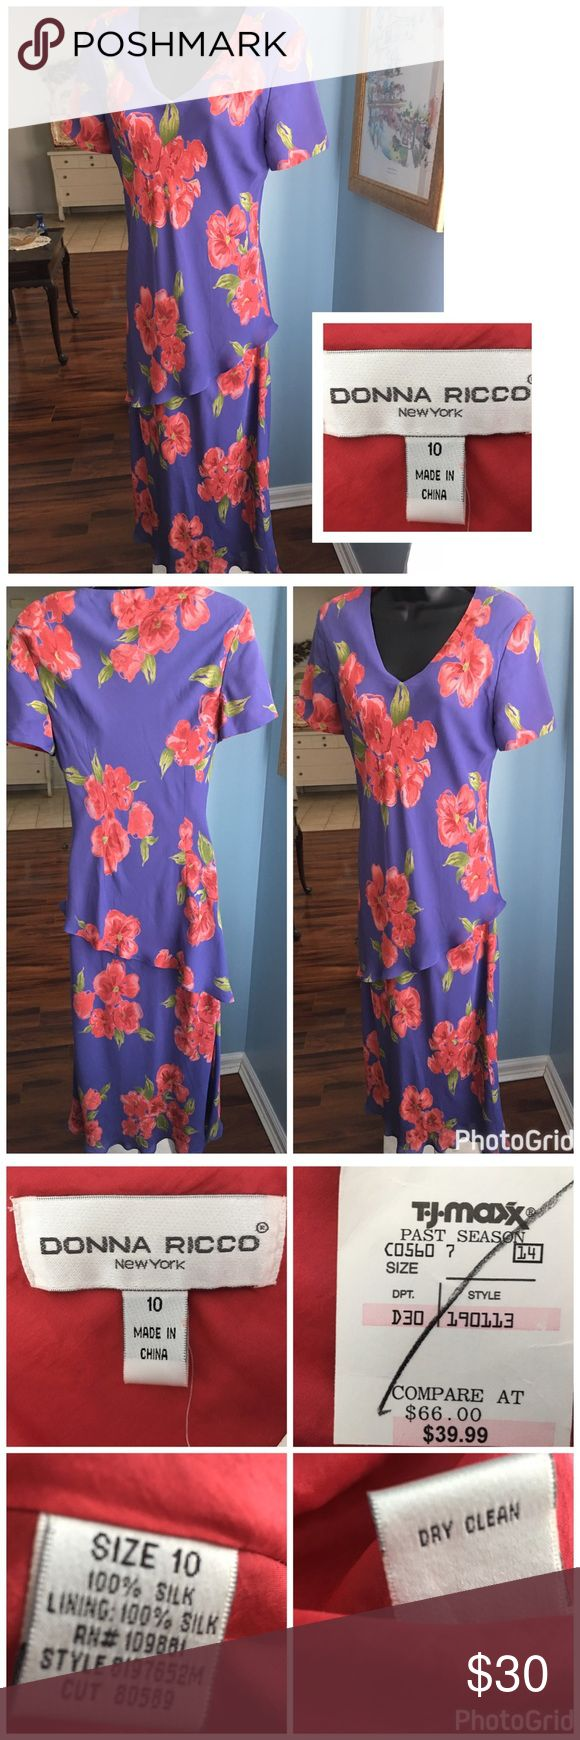 "Donna Ricco Dress Beautiful Donna Ricco Silk Dress. Free flowing lined dress with shoulder pads. Measures 18"" across the chest and 52"" in length. Bought but never worn. Donna Ricco Dresses"